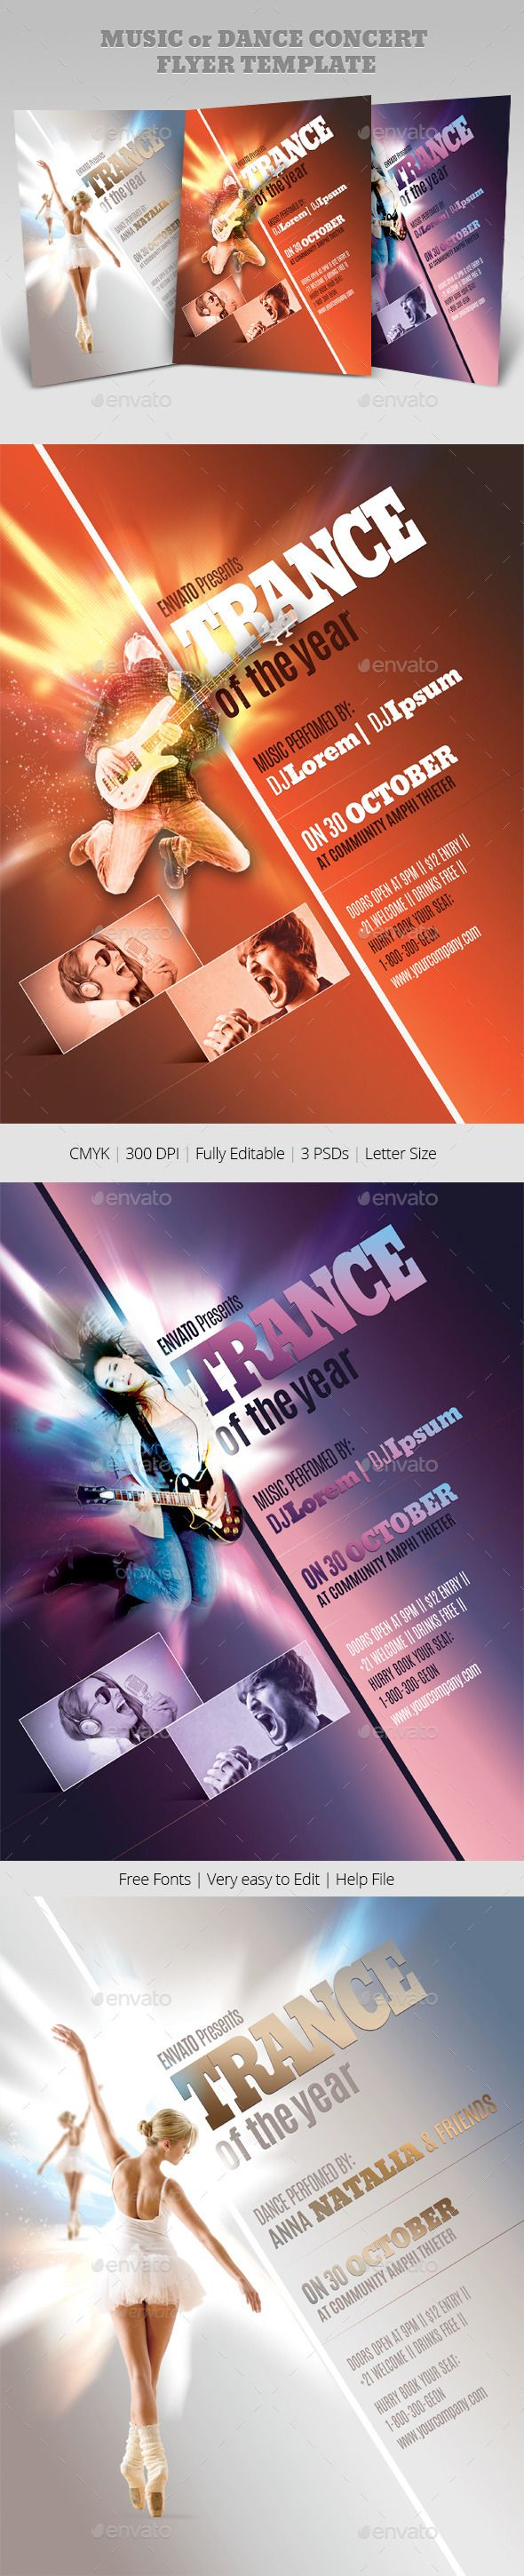 Music Or Dance Concert Flyer Templates  Concert Flyer Flyer